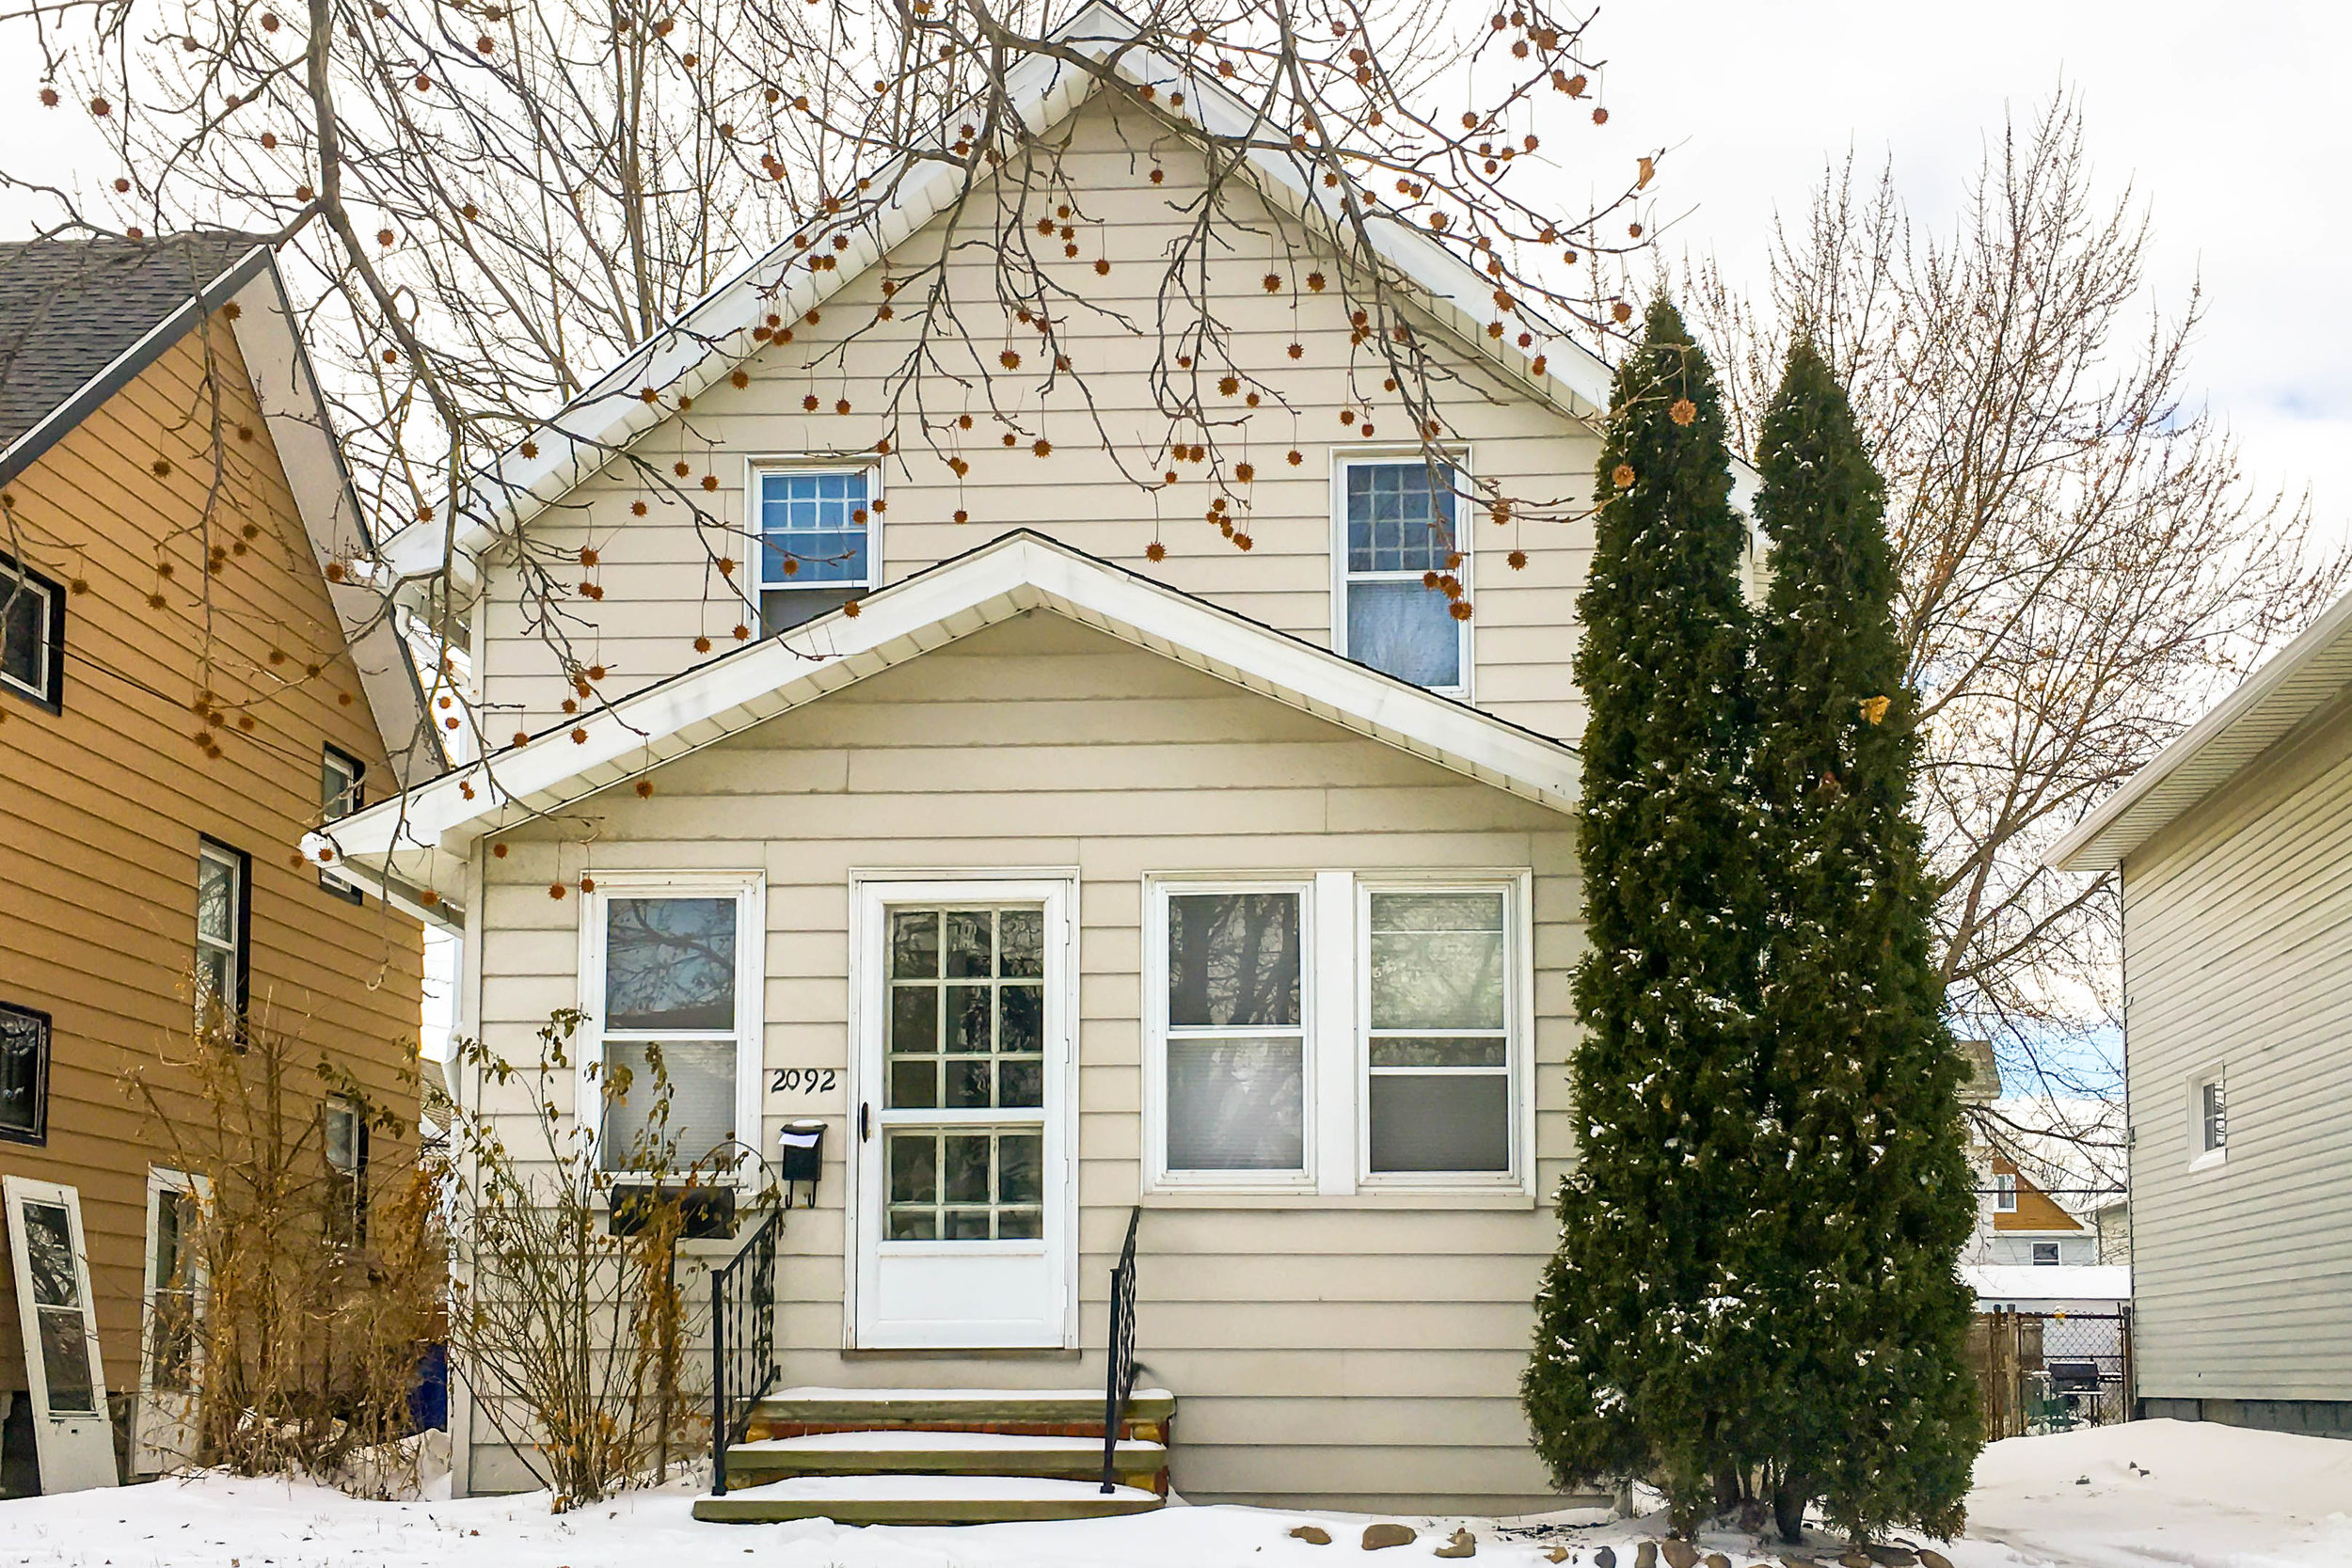 2092 W. 103_Turnkey Investment Properies